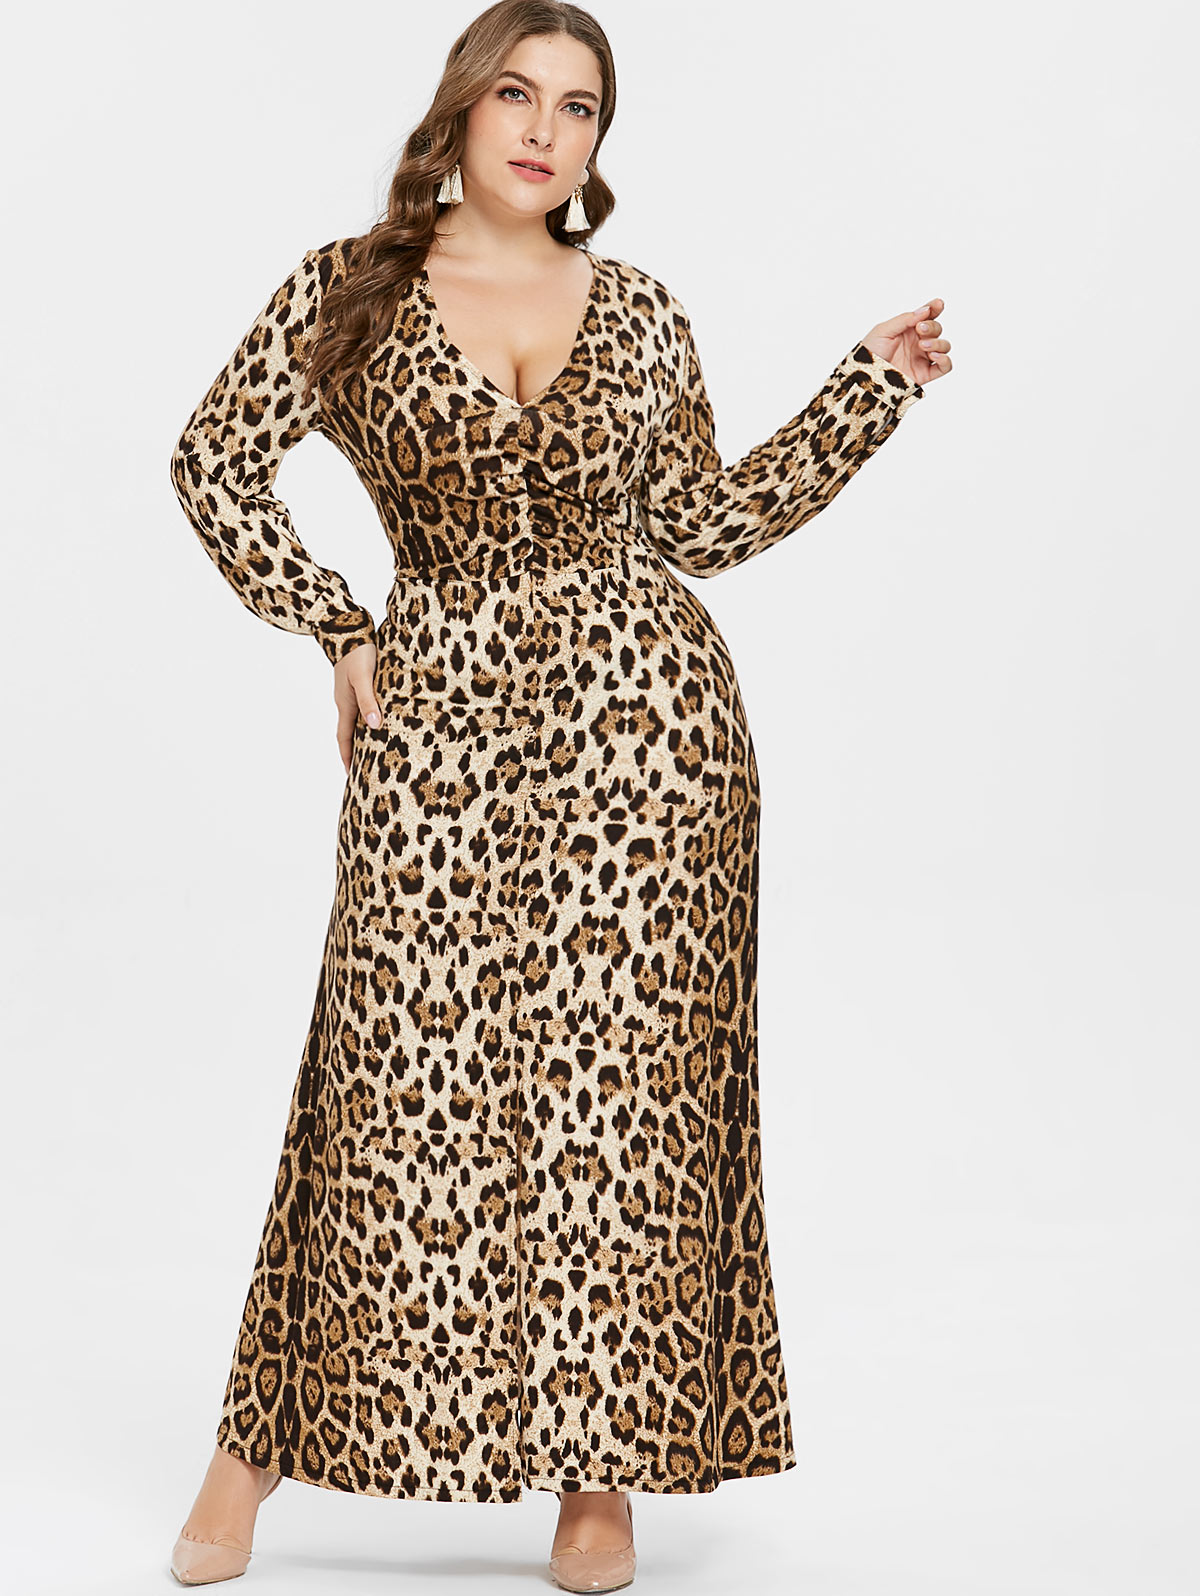 5cc12131652 Wipalo Plus Size Sexy V Neck Leopard Dress Women Long Sleeves Ankle-Length  Dress Casual